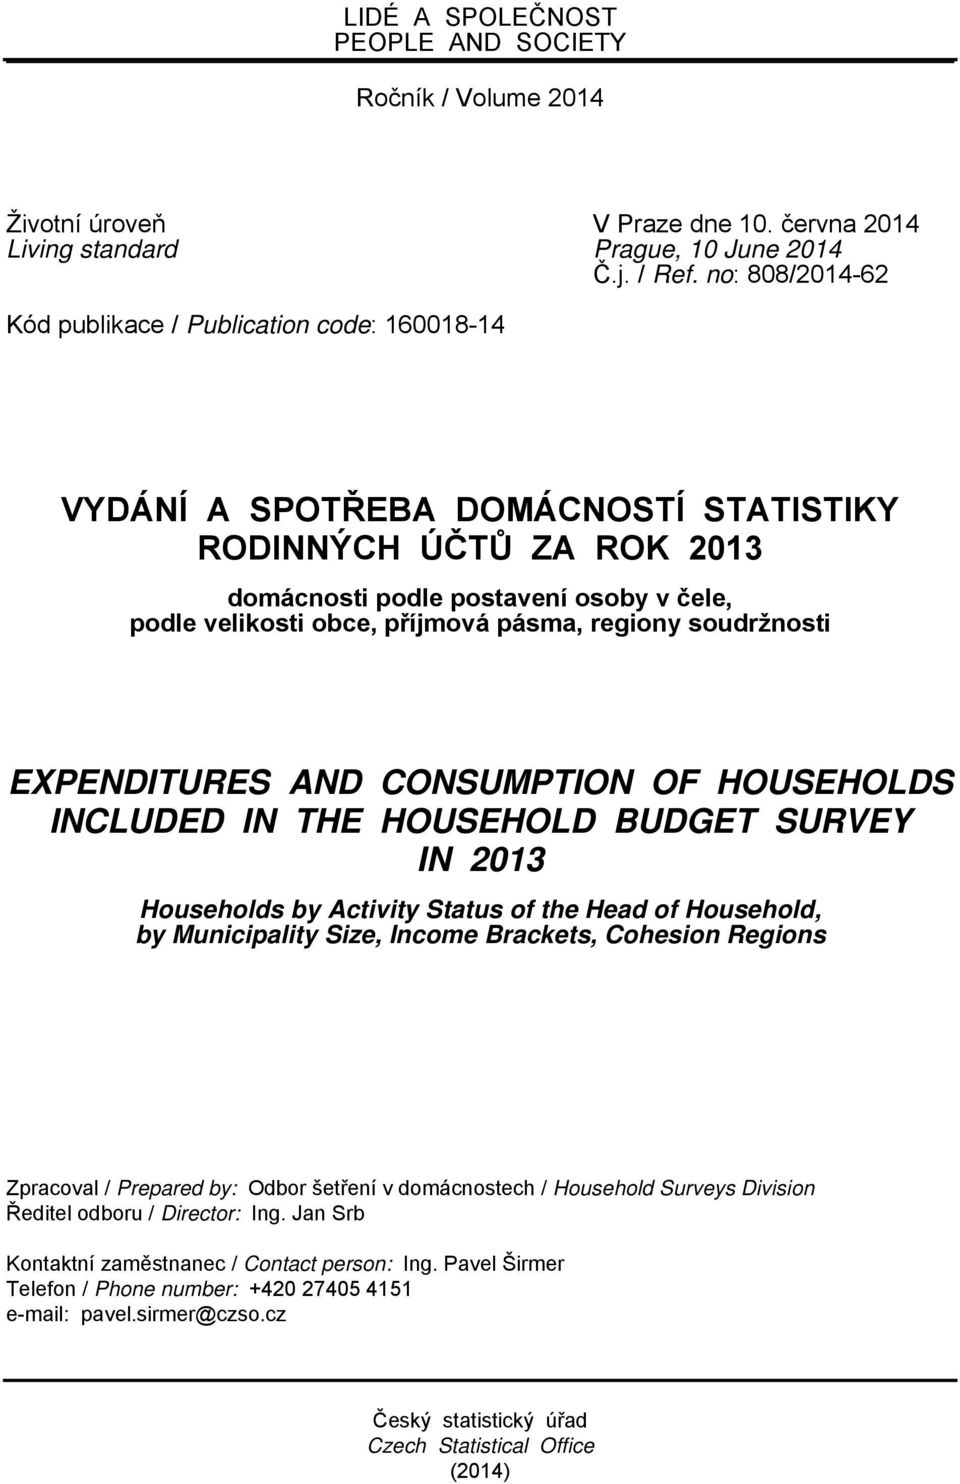 pásma, regiony soudržnosti EXPENDITURES AND CONSUMPTION OF HOUSEHOLDS INCLUDED IN THE HOUSEHOLD BUDGET SURVEY IN 2013 Households by Activity Status of the Head of Household, by Municipality Size,